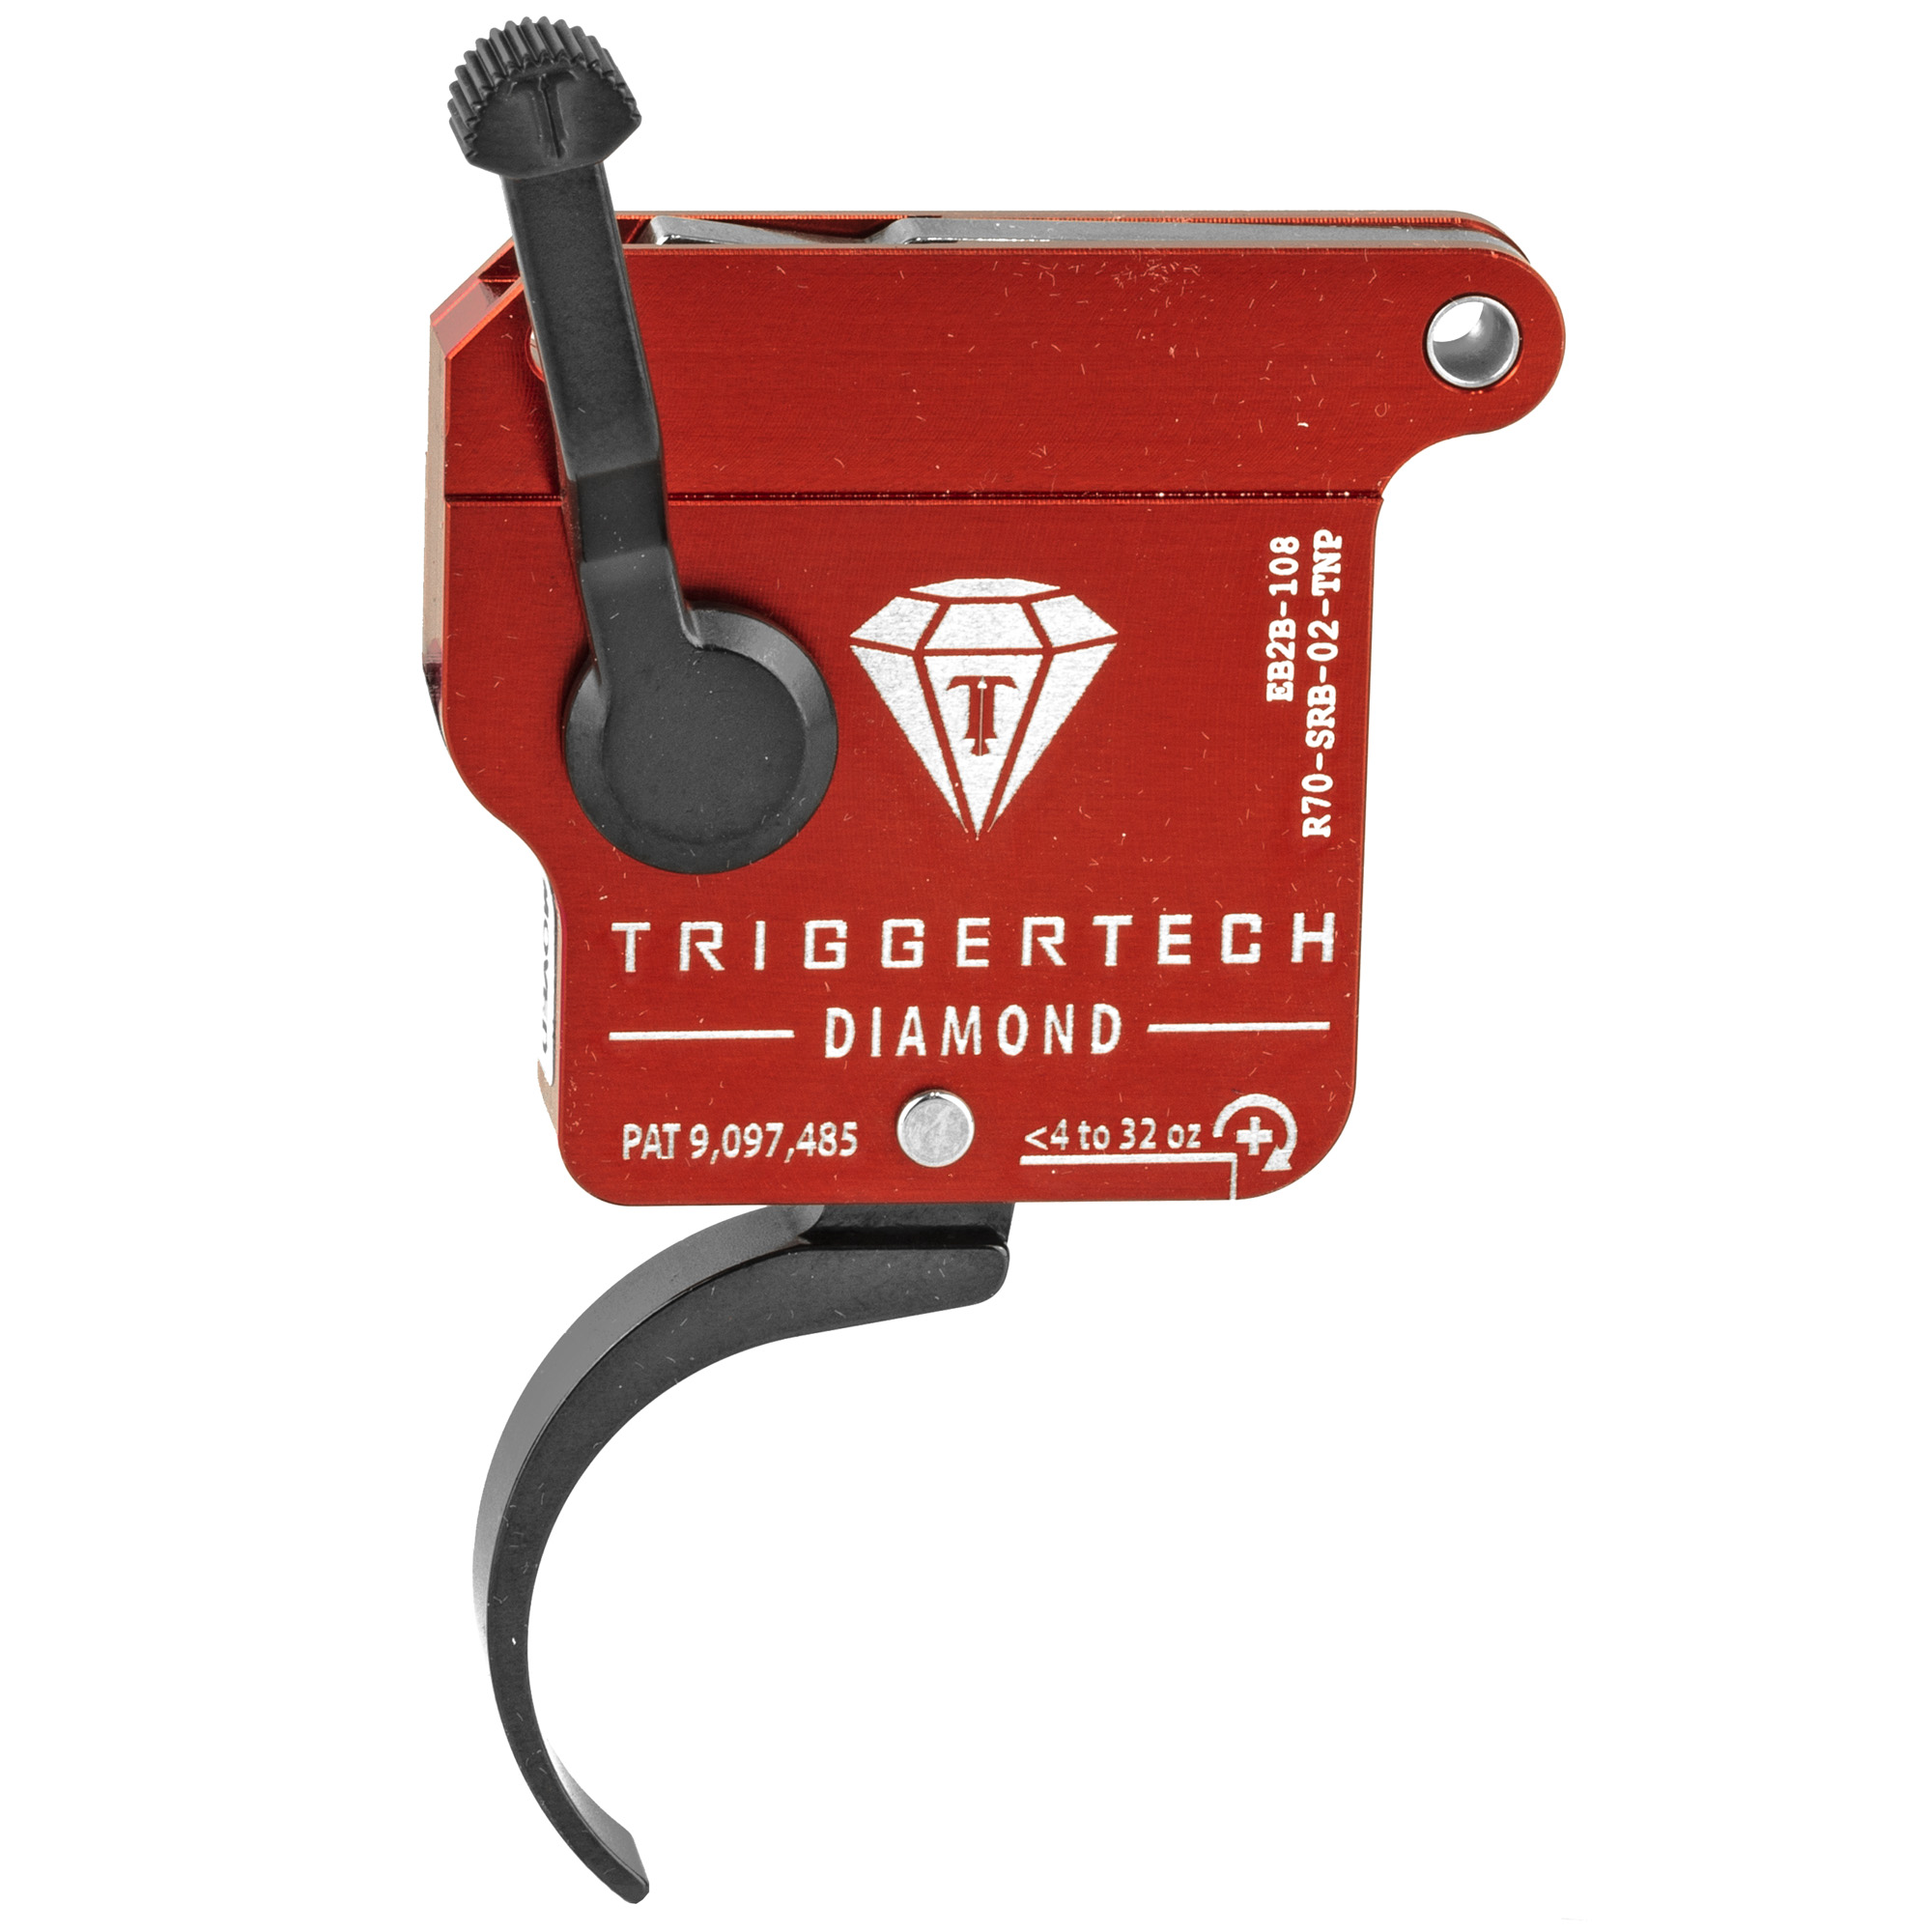 The Rem 700 Diamond is truly zero creep and is the most consistent and crisp breaking trigger you will ever use. It features new variable rate adjustment technology that enables quick and confident adjustment from